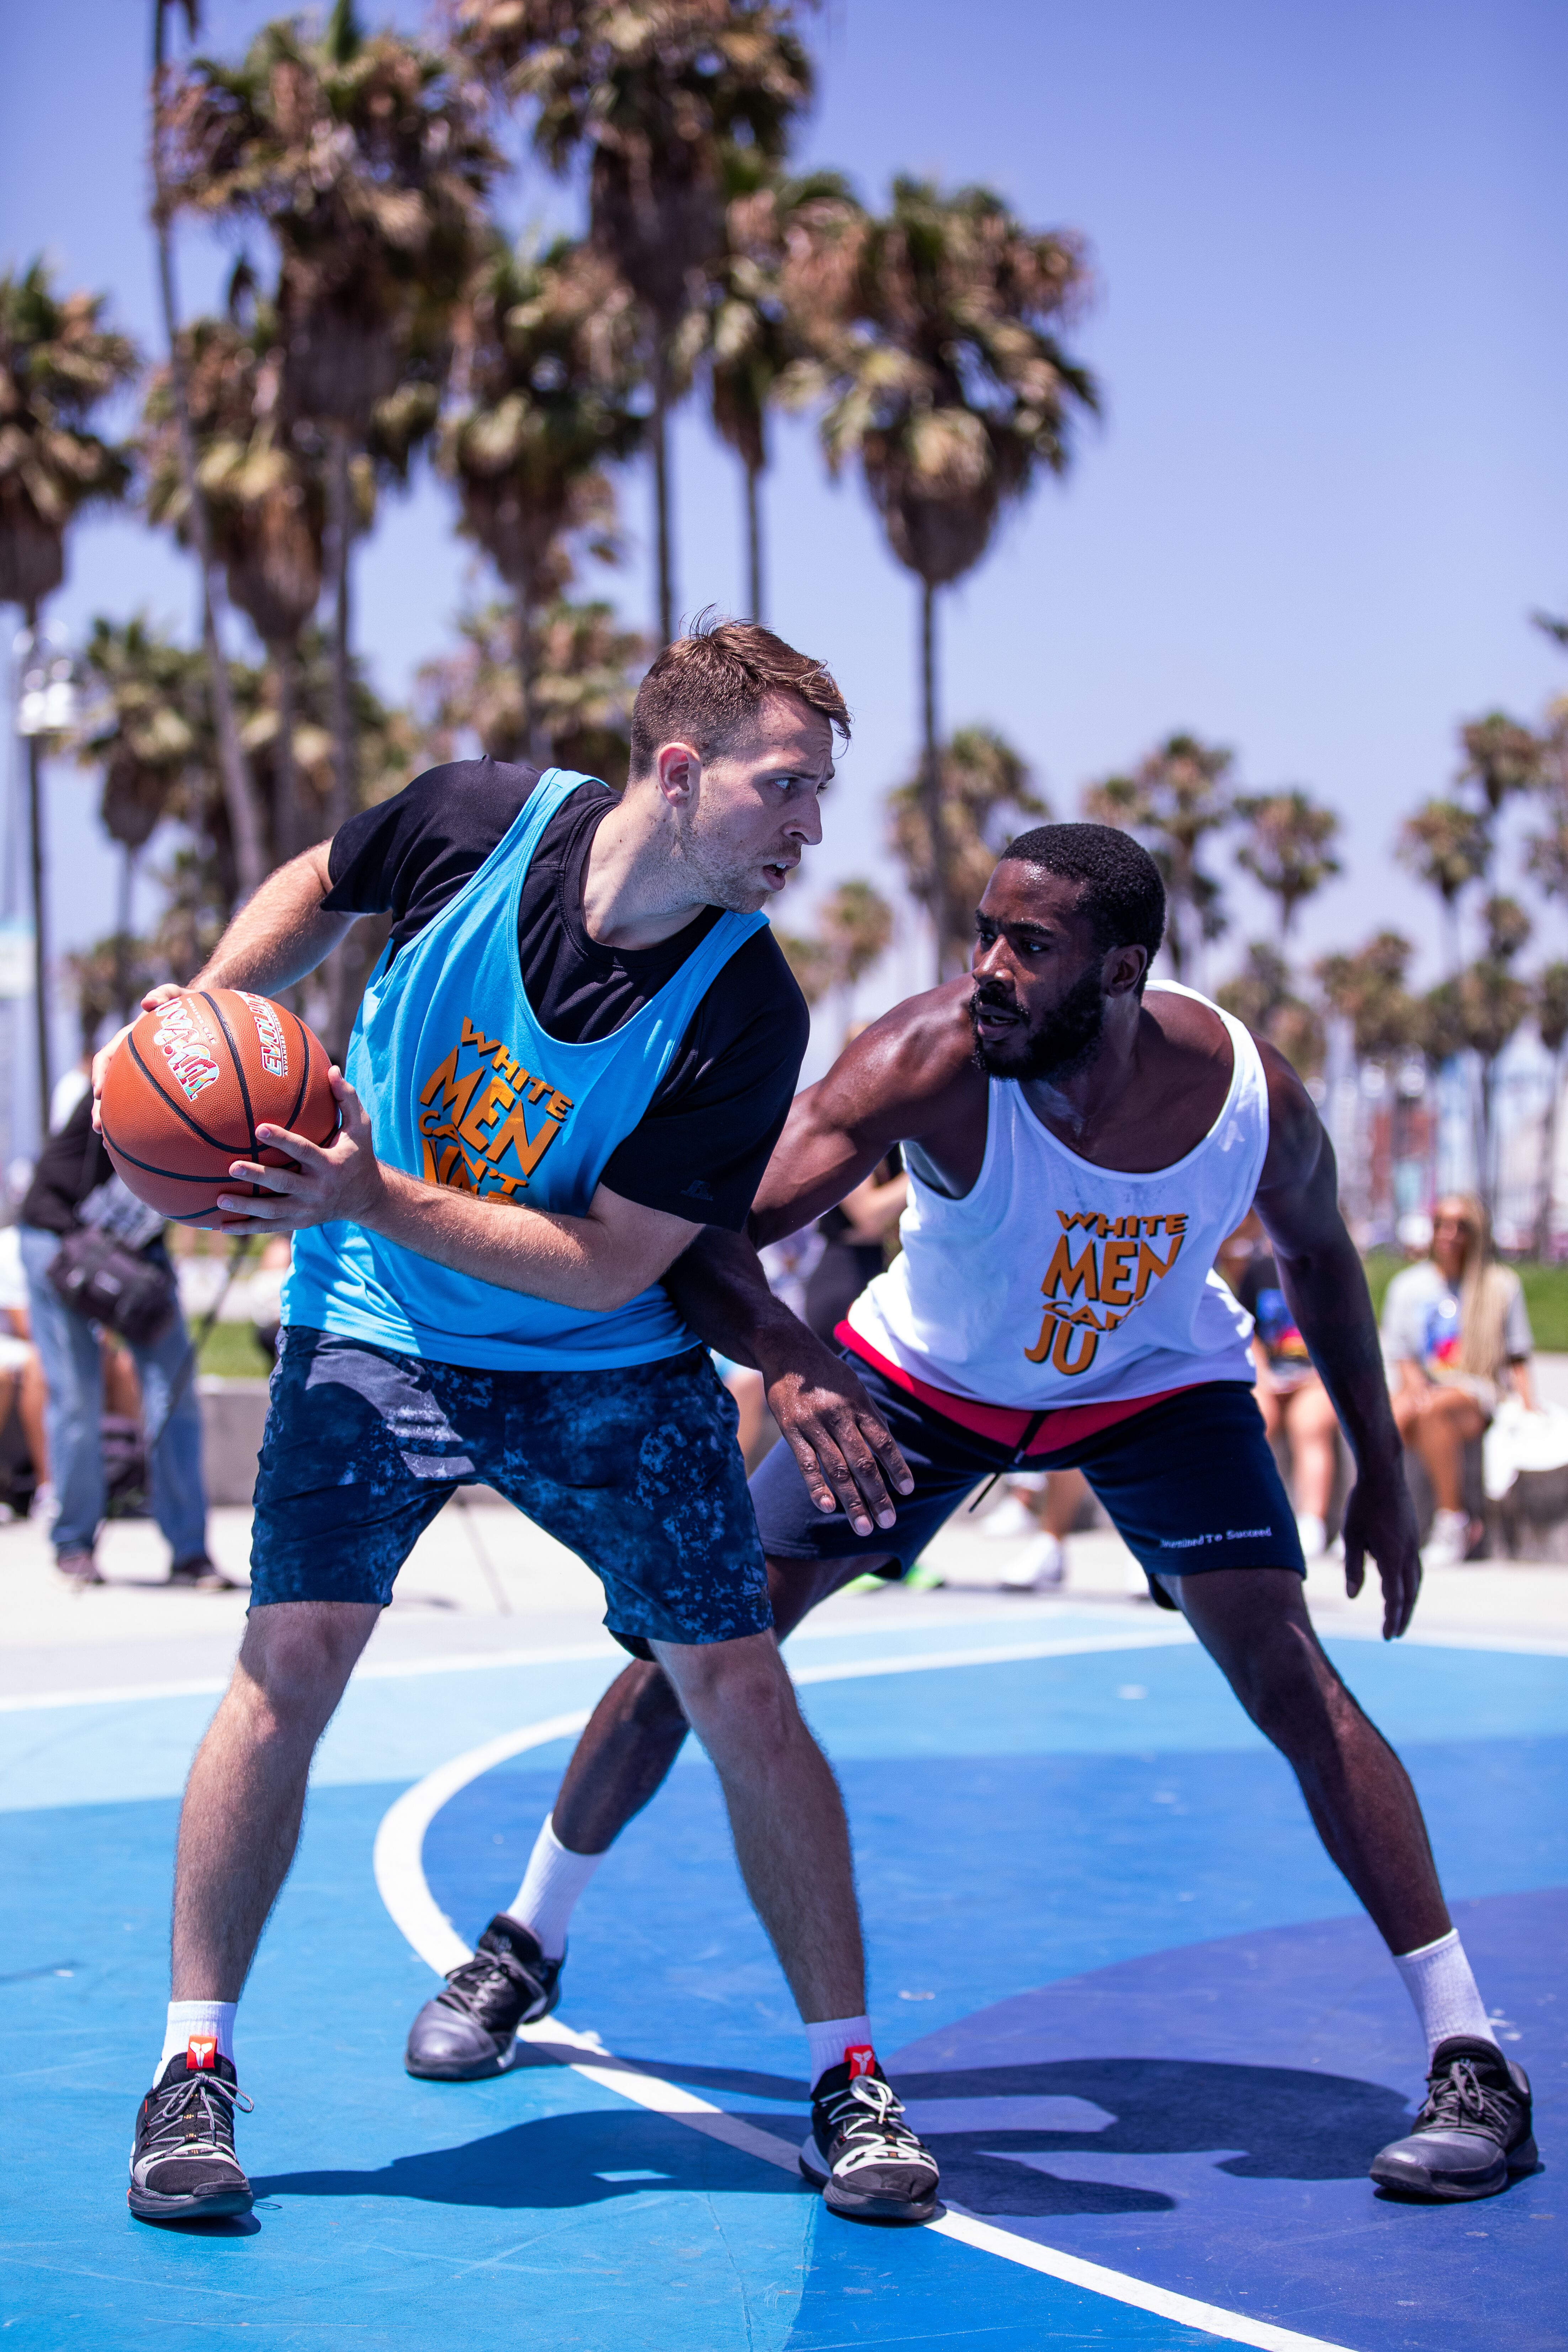 2 basketball players in a 1v1 matchup